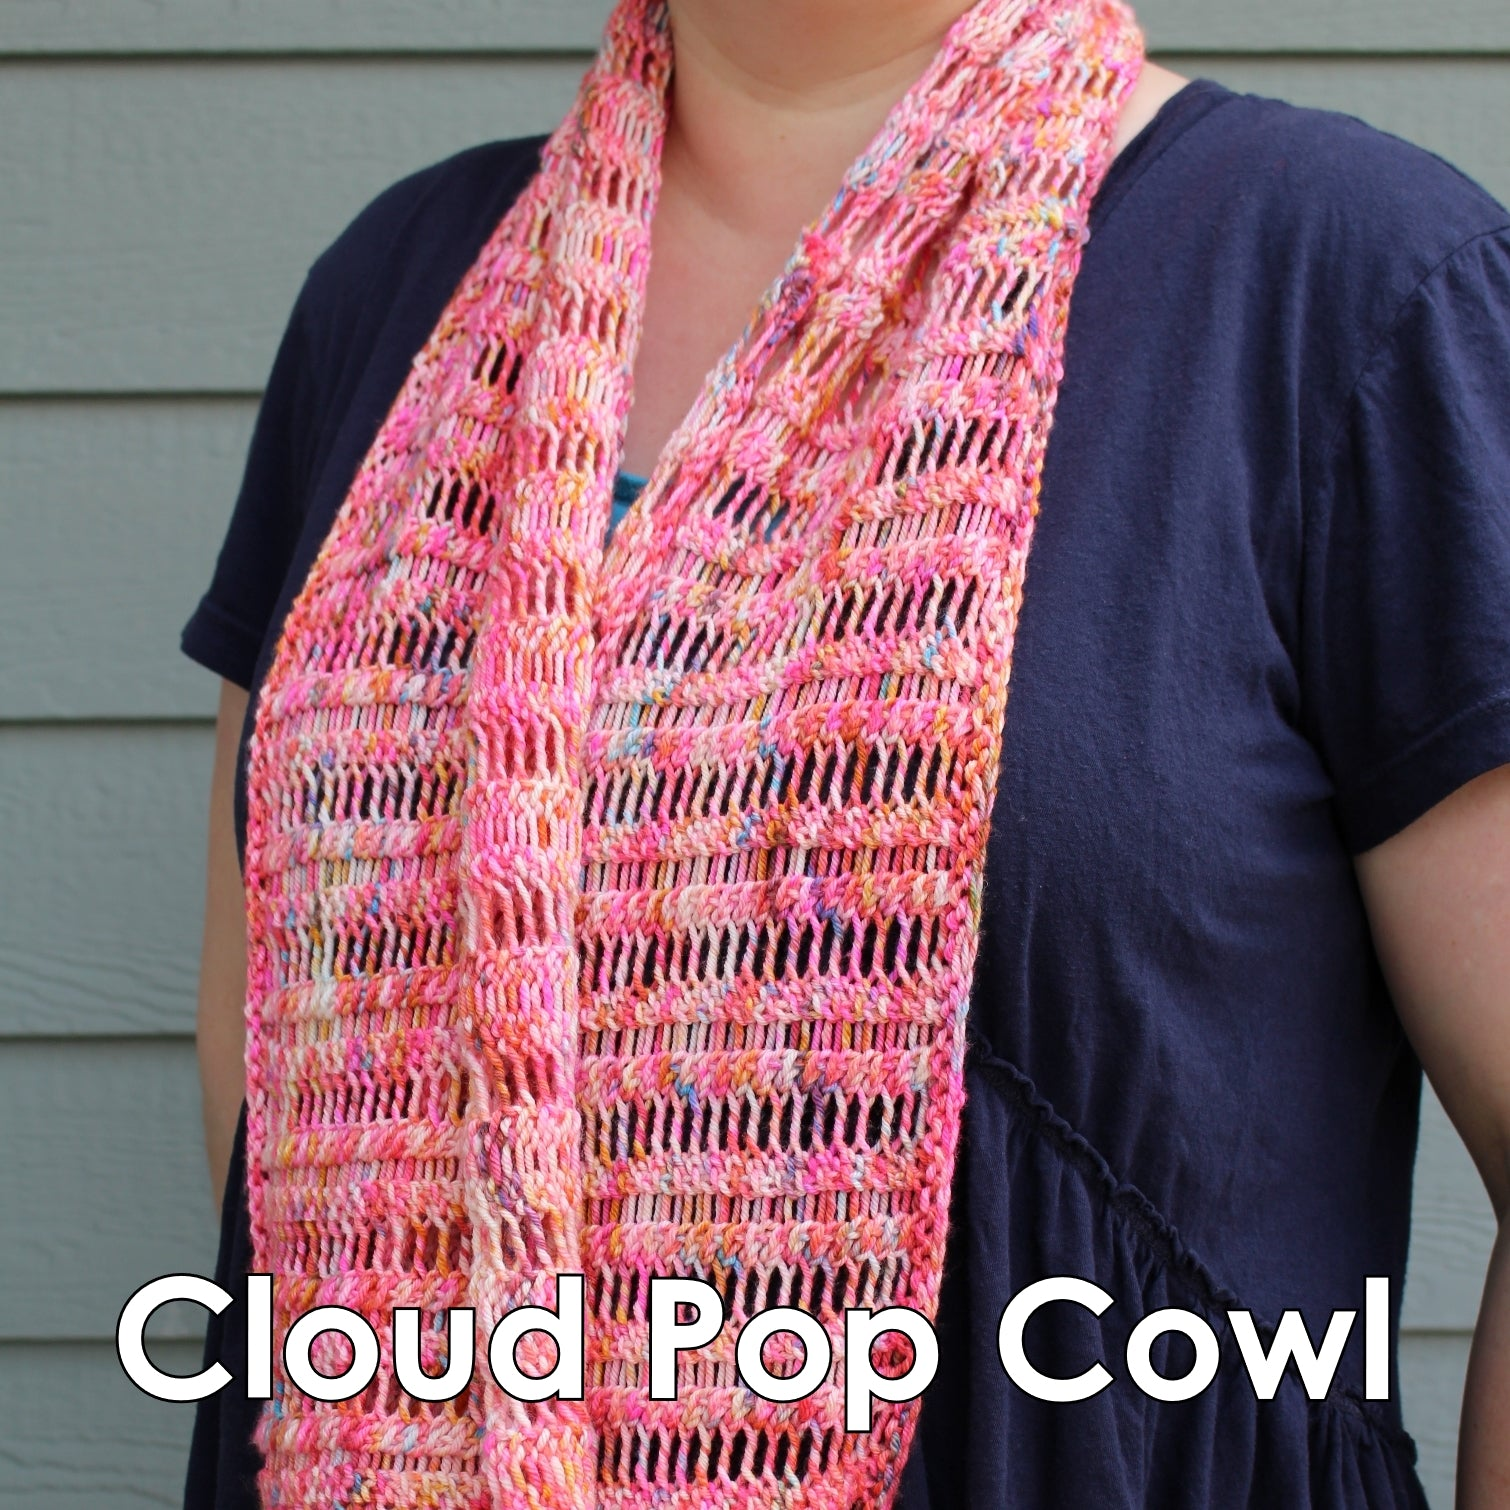 Cloud Pop Cowl